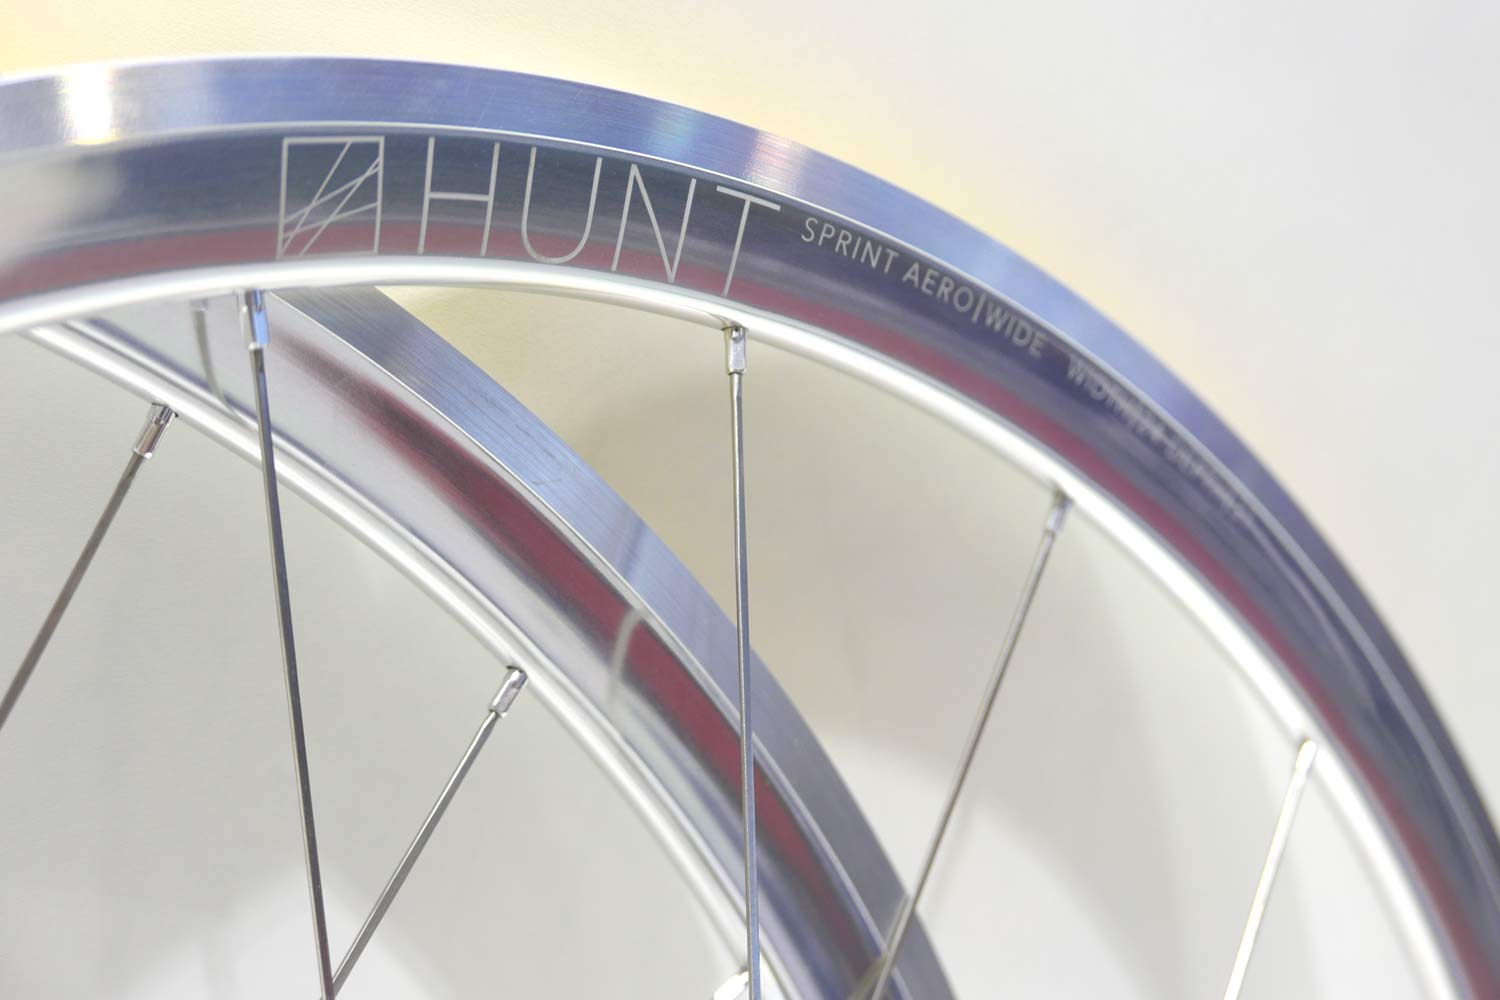 Hunt Sprint Aero Wide - Tubeless Wheel